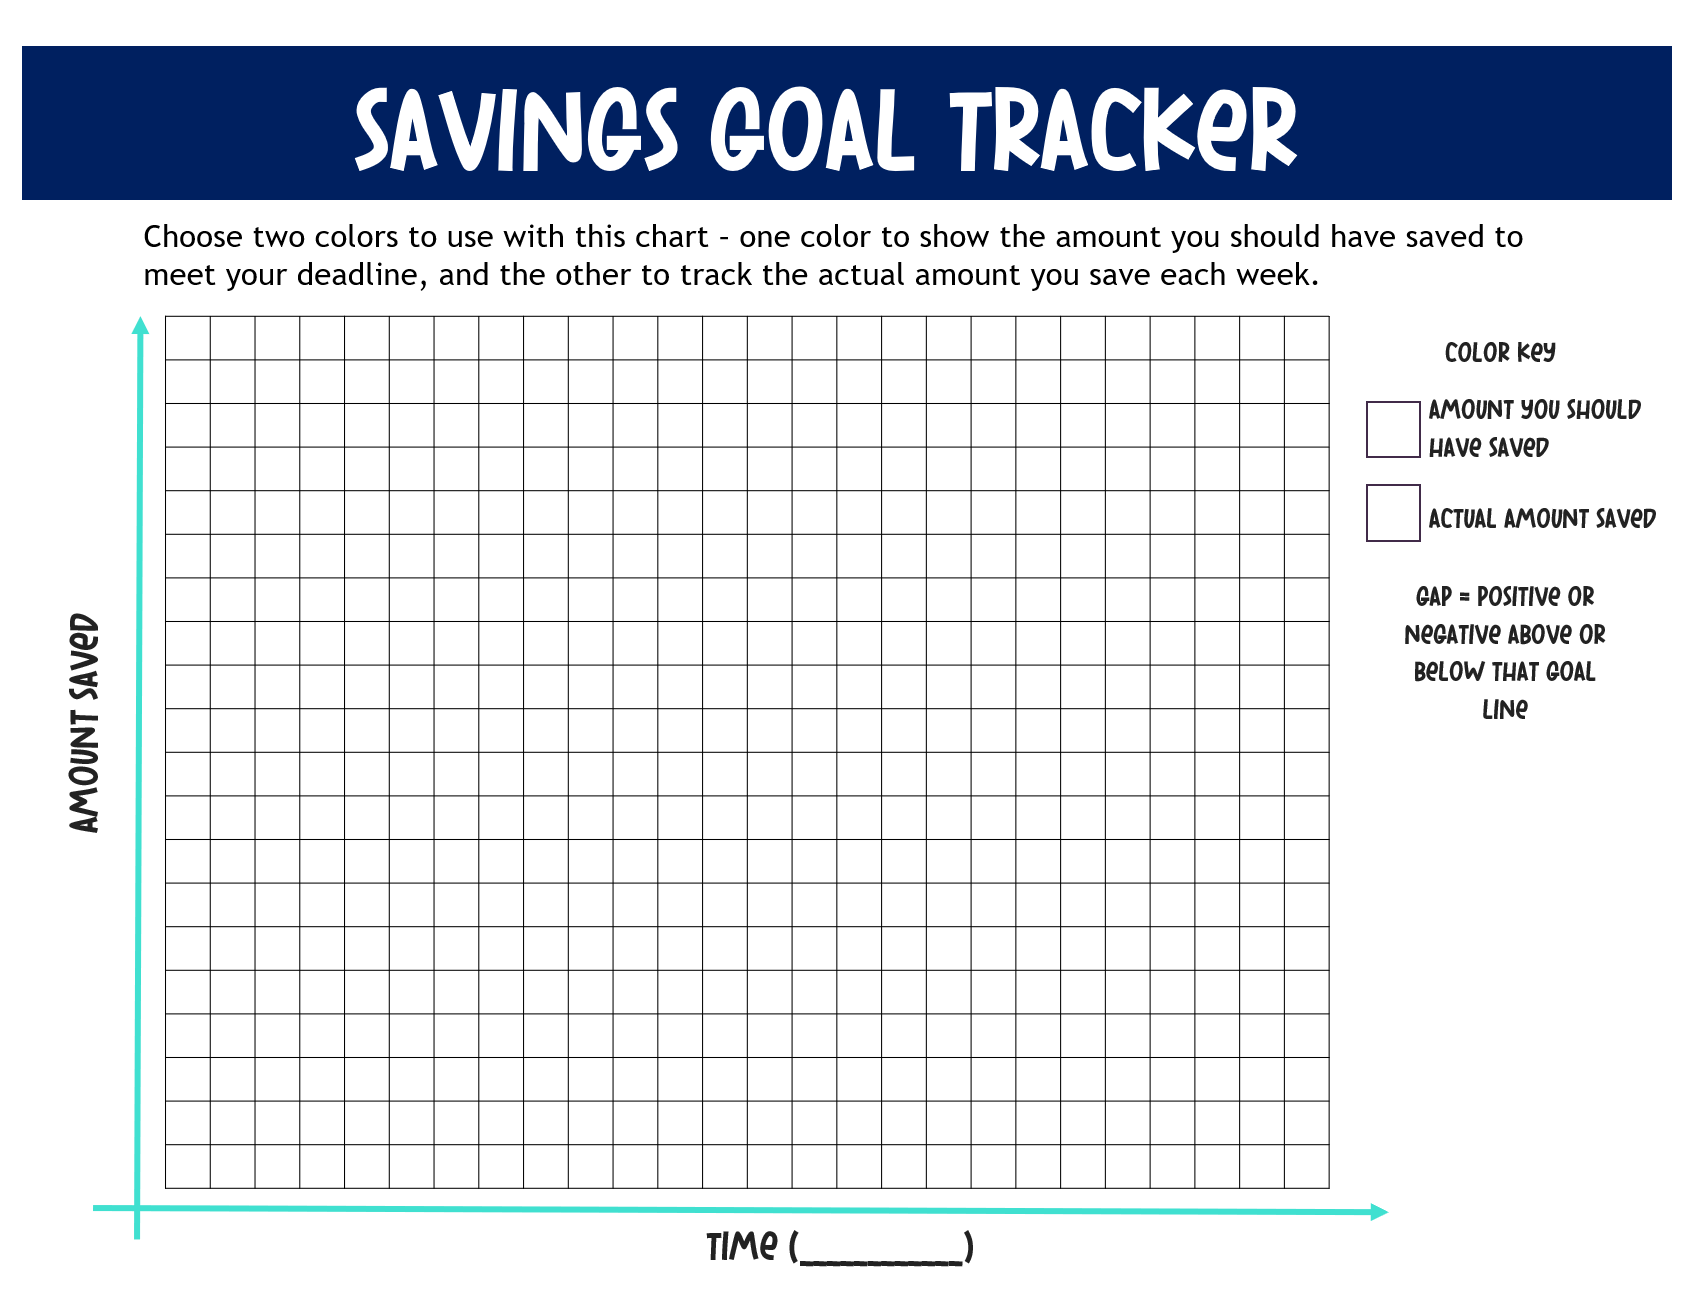 Navy blue and light blue, and white savings goal tracker chart with y-axis amount saved and x-axis time